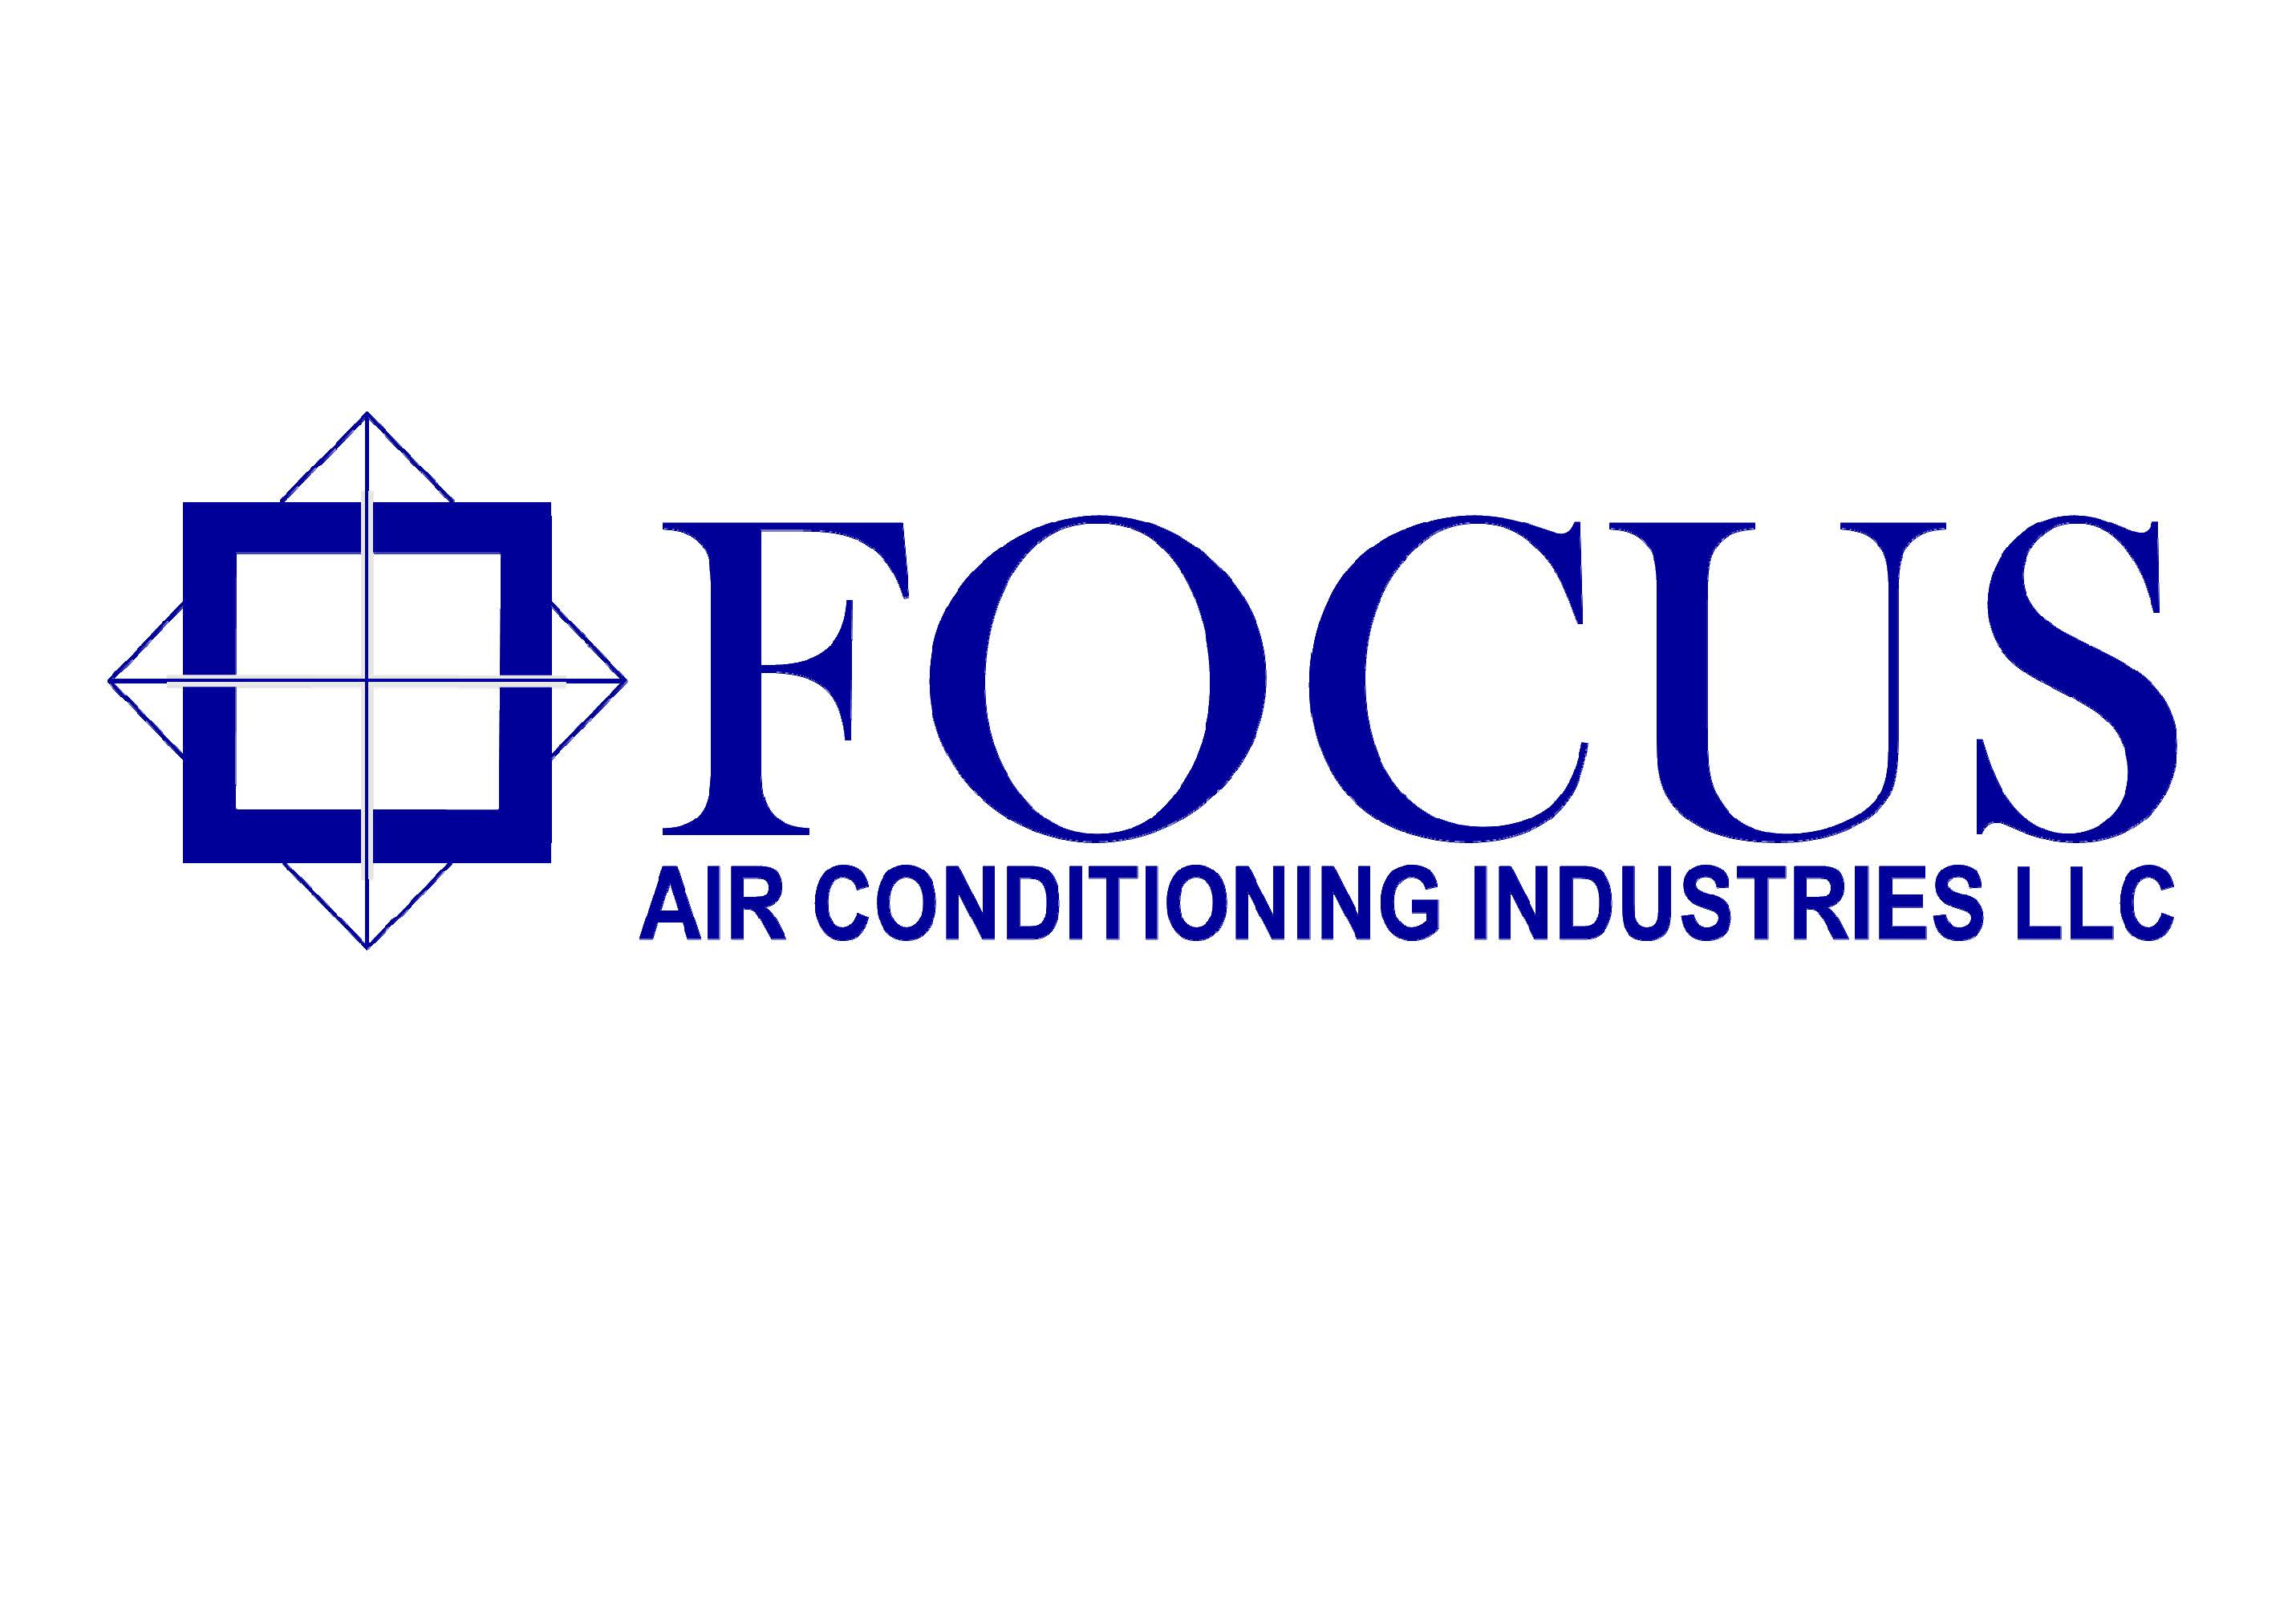 Focus Air Conditioning Industries LLC | ProTenders